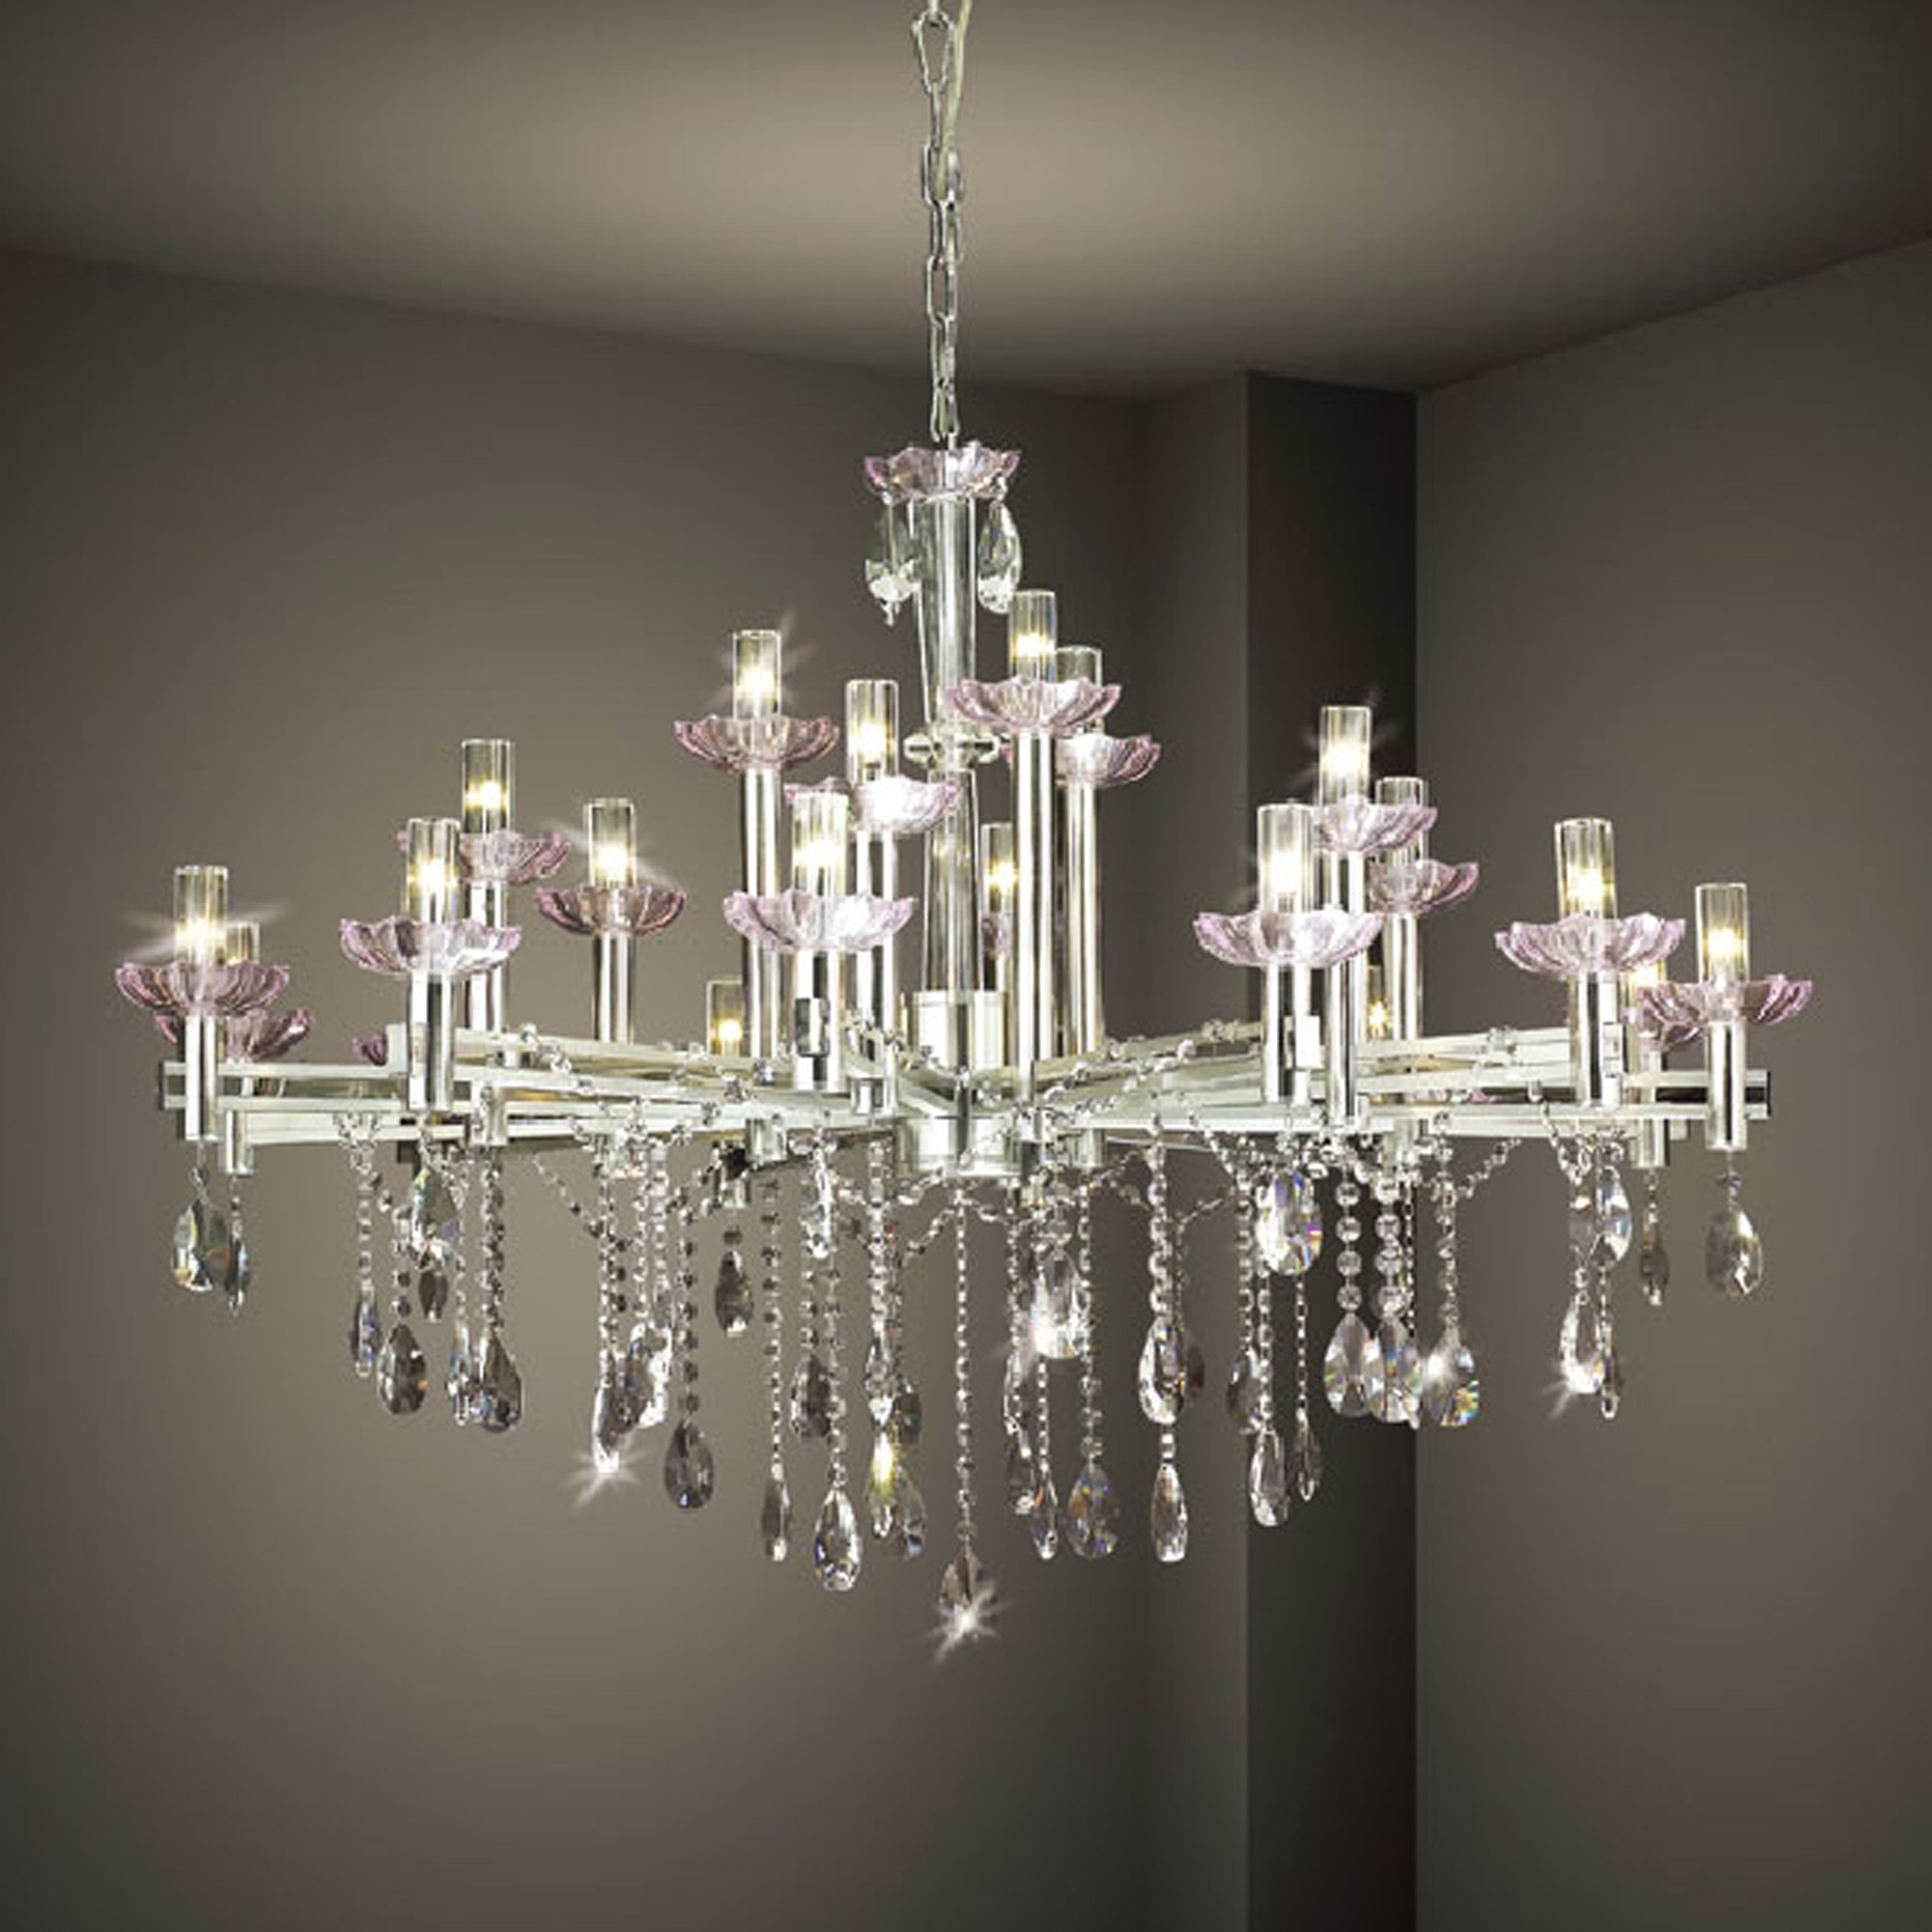 12 photo of large chandeliers modern for Large modern chandelier lighting